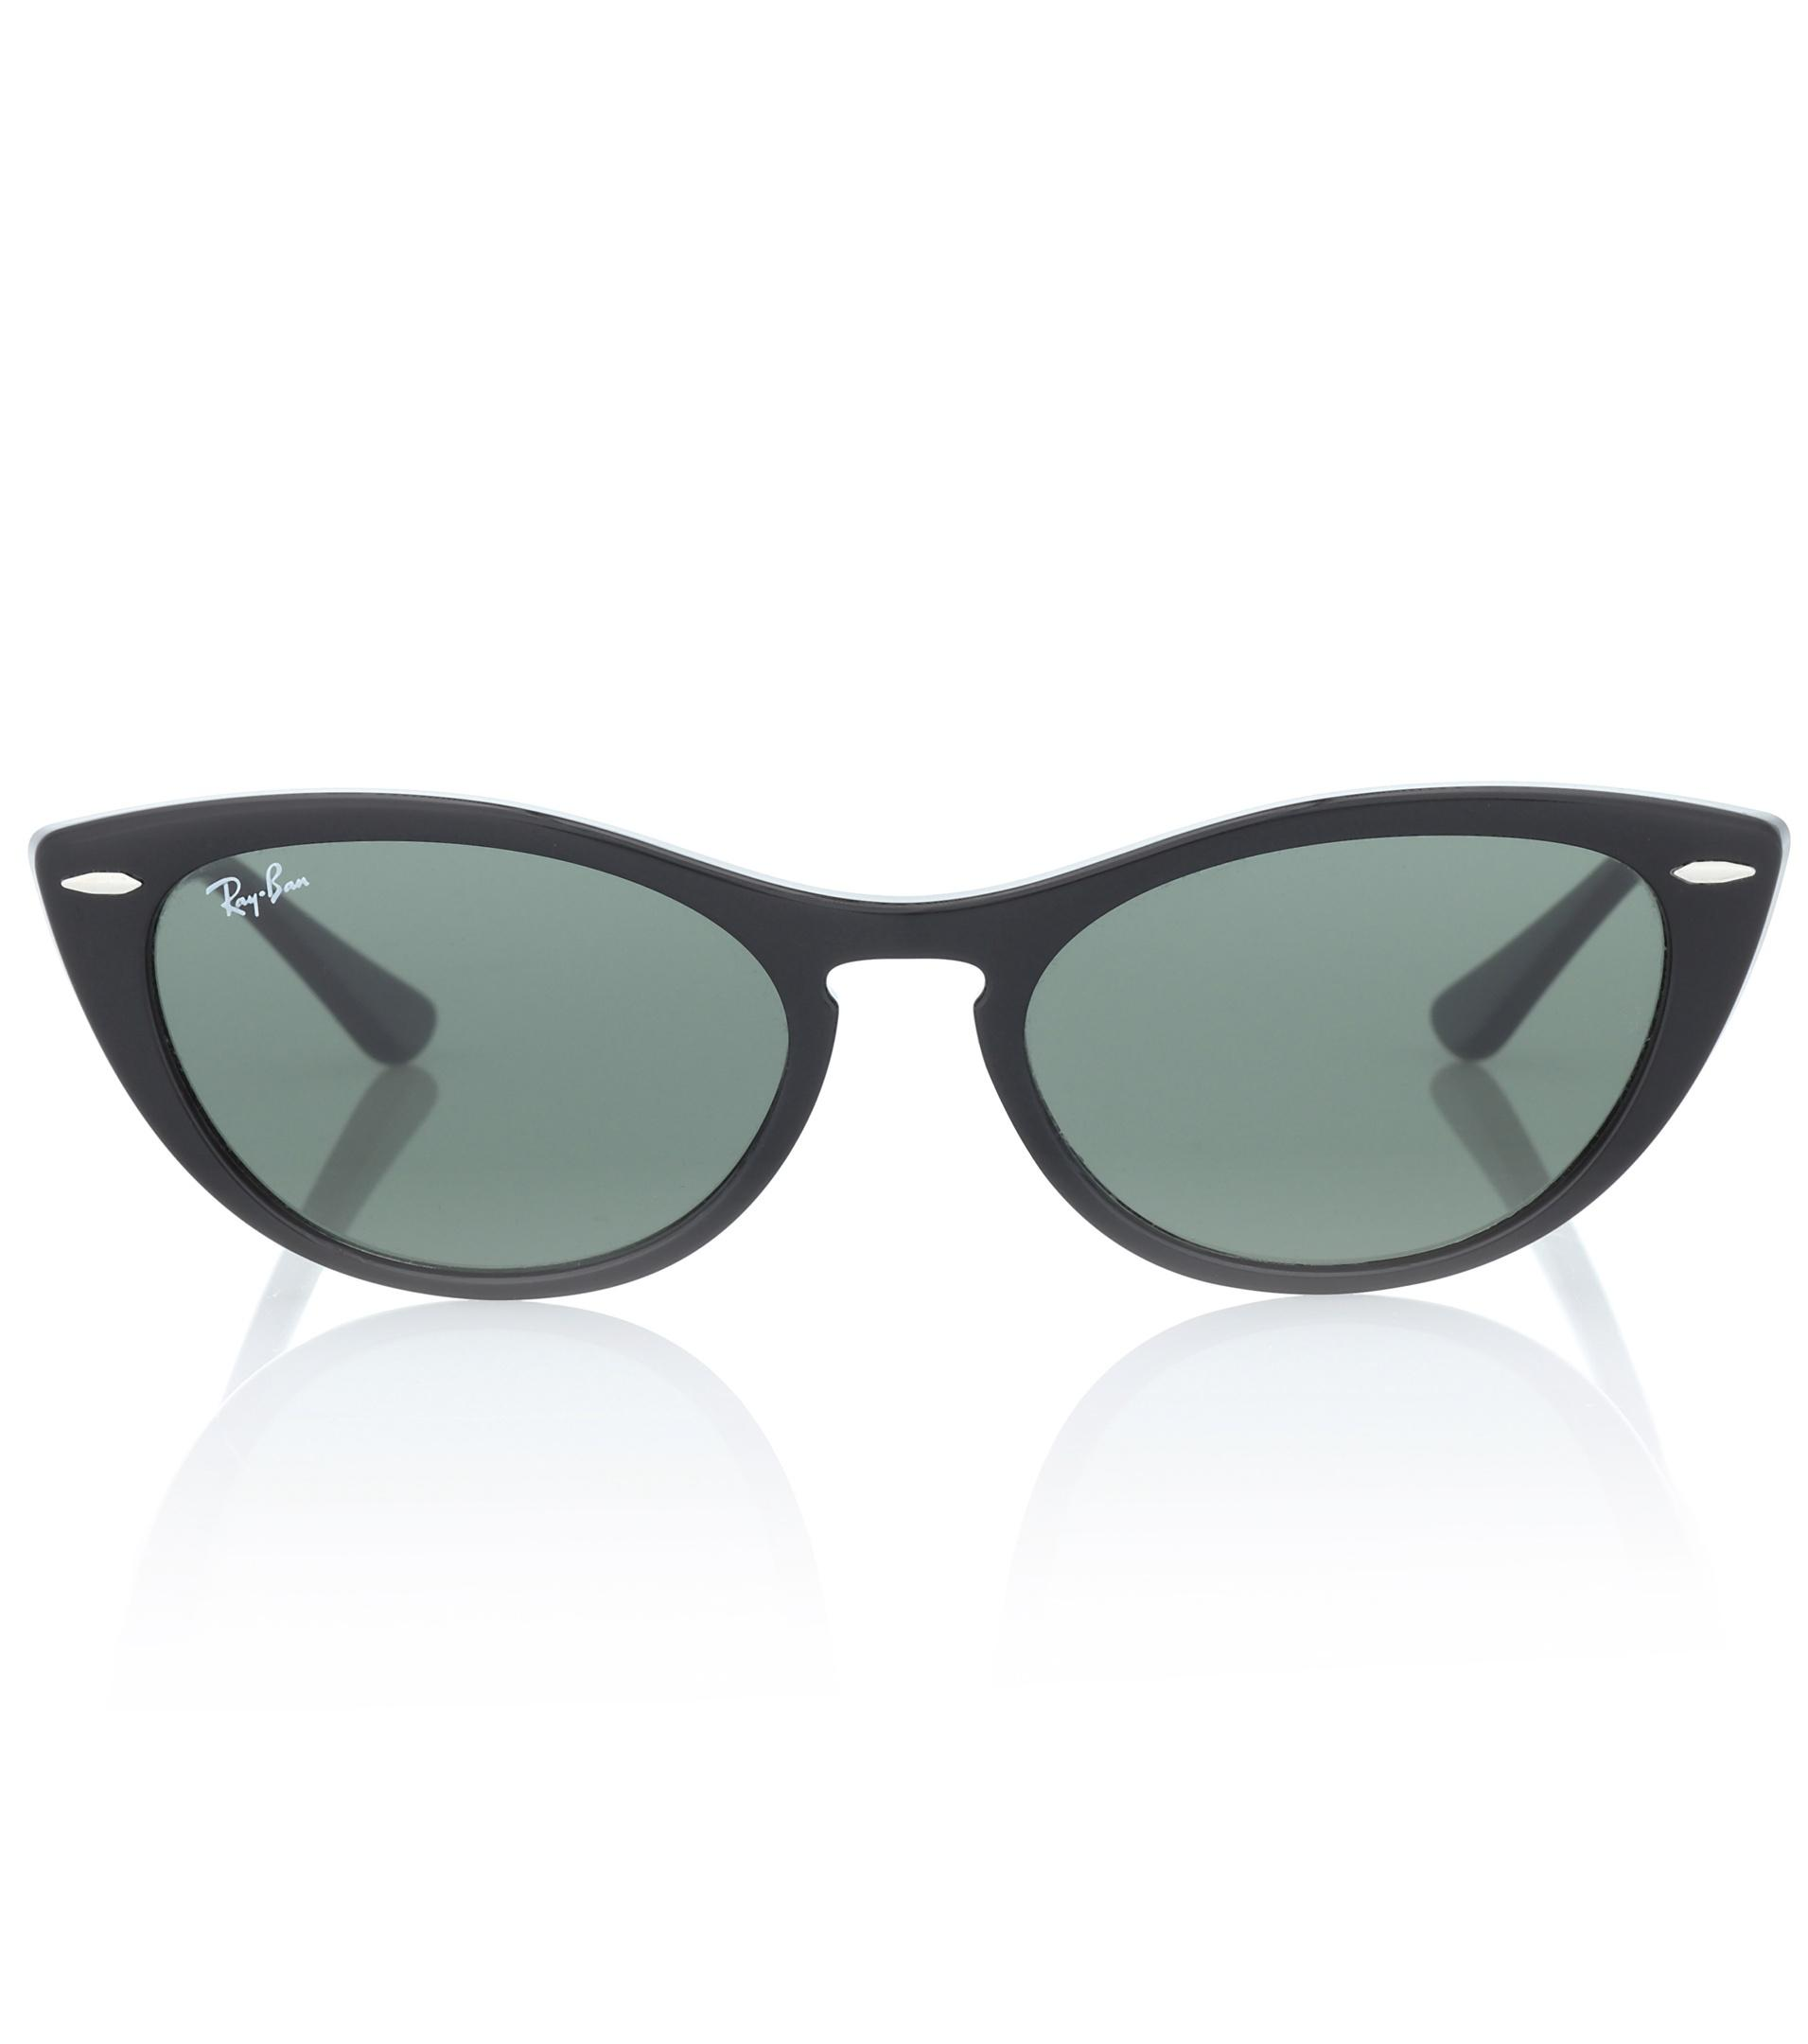 762dc8f60ac Lyst - Ray-Ban Nina Cat-eye Acetate Sunglasses in Black